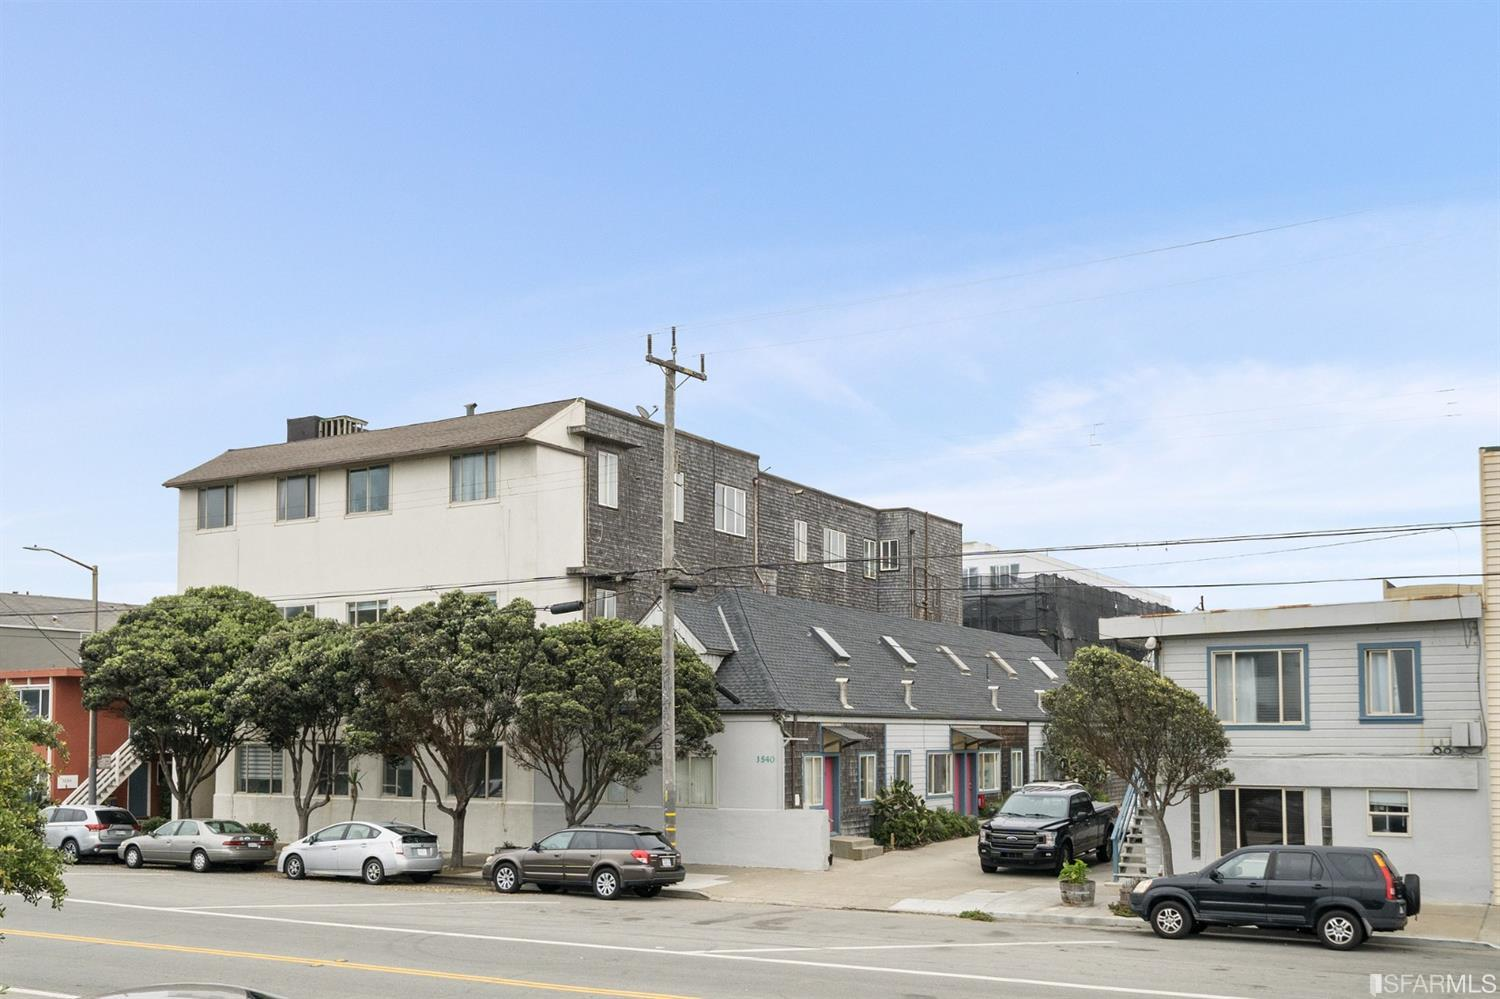 Multi-Family Home In Outer Sunset